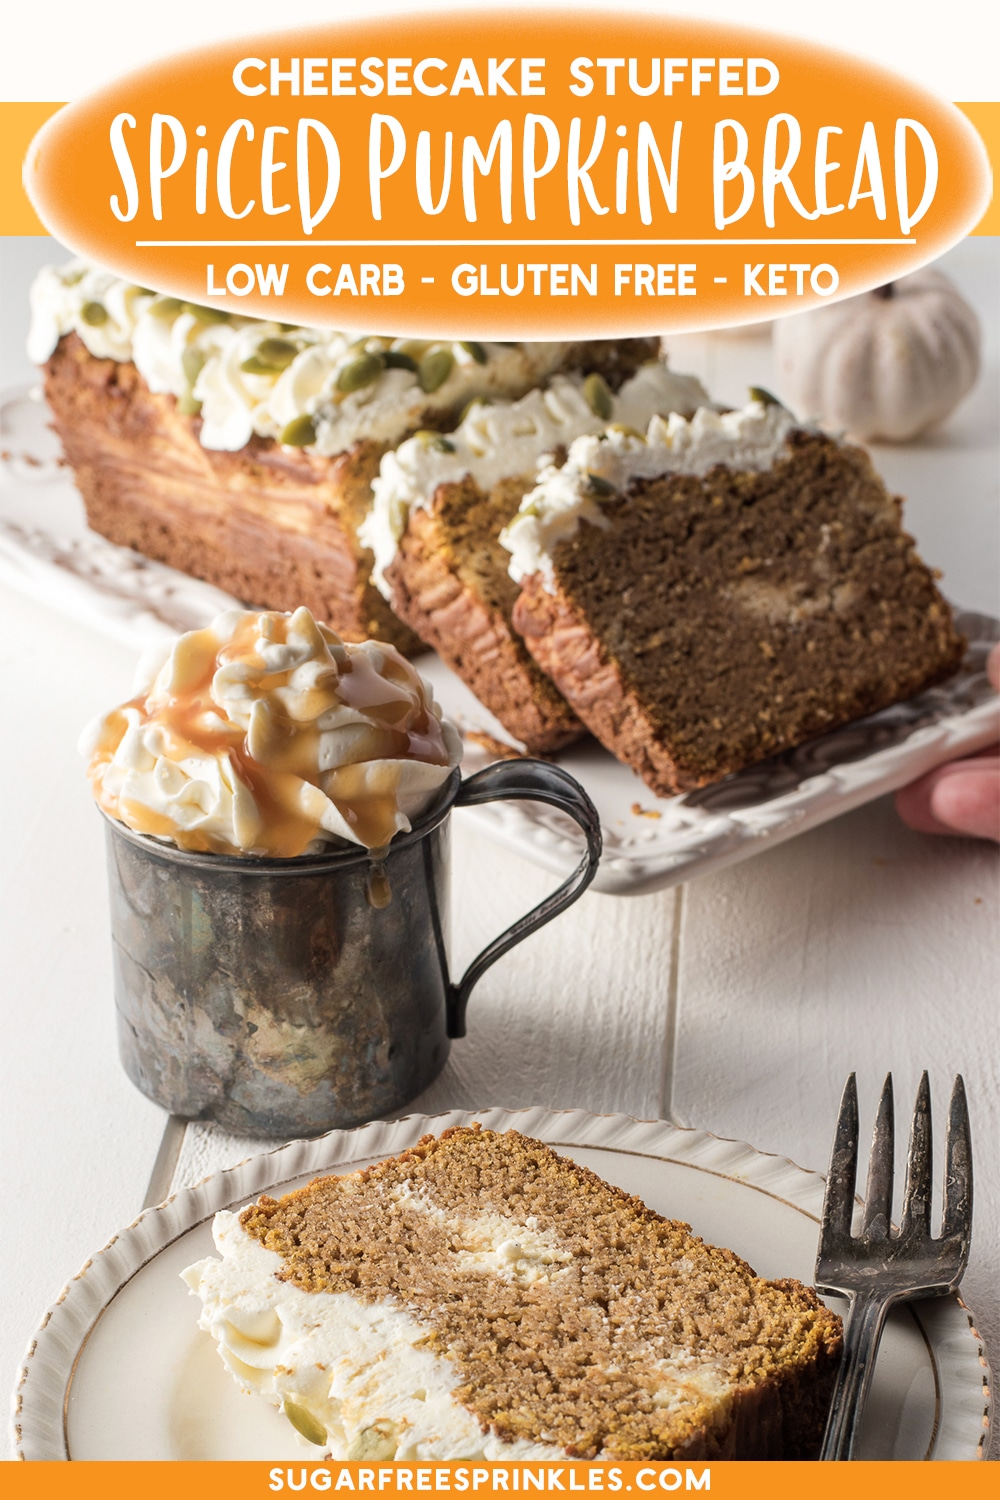 This cheesecake stuffed spiced pumpkin bread is low carb, gluten-free and keto-friendly.   The pumpkin bread is moist and dense and spiced with cinnamon, cloves, and nutmeg and makes a great fall dessert.This low carb pumpkin bread is stuffed with a creamy vanilla creamy cheesecake filling and topped with a whipped cream frosting and raw pumpkin seeds.  A great little low carb treat to have with a hot cup of coffee or tea.   #lowcarbpumkinbread #pumpkinbread #falldesserts